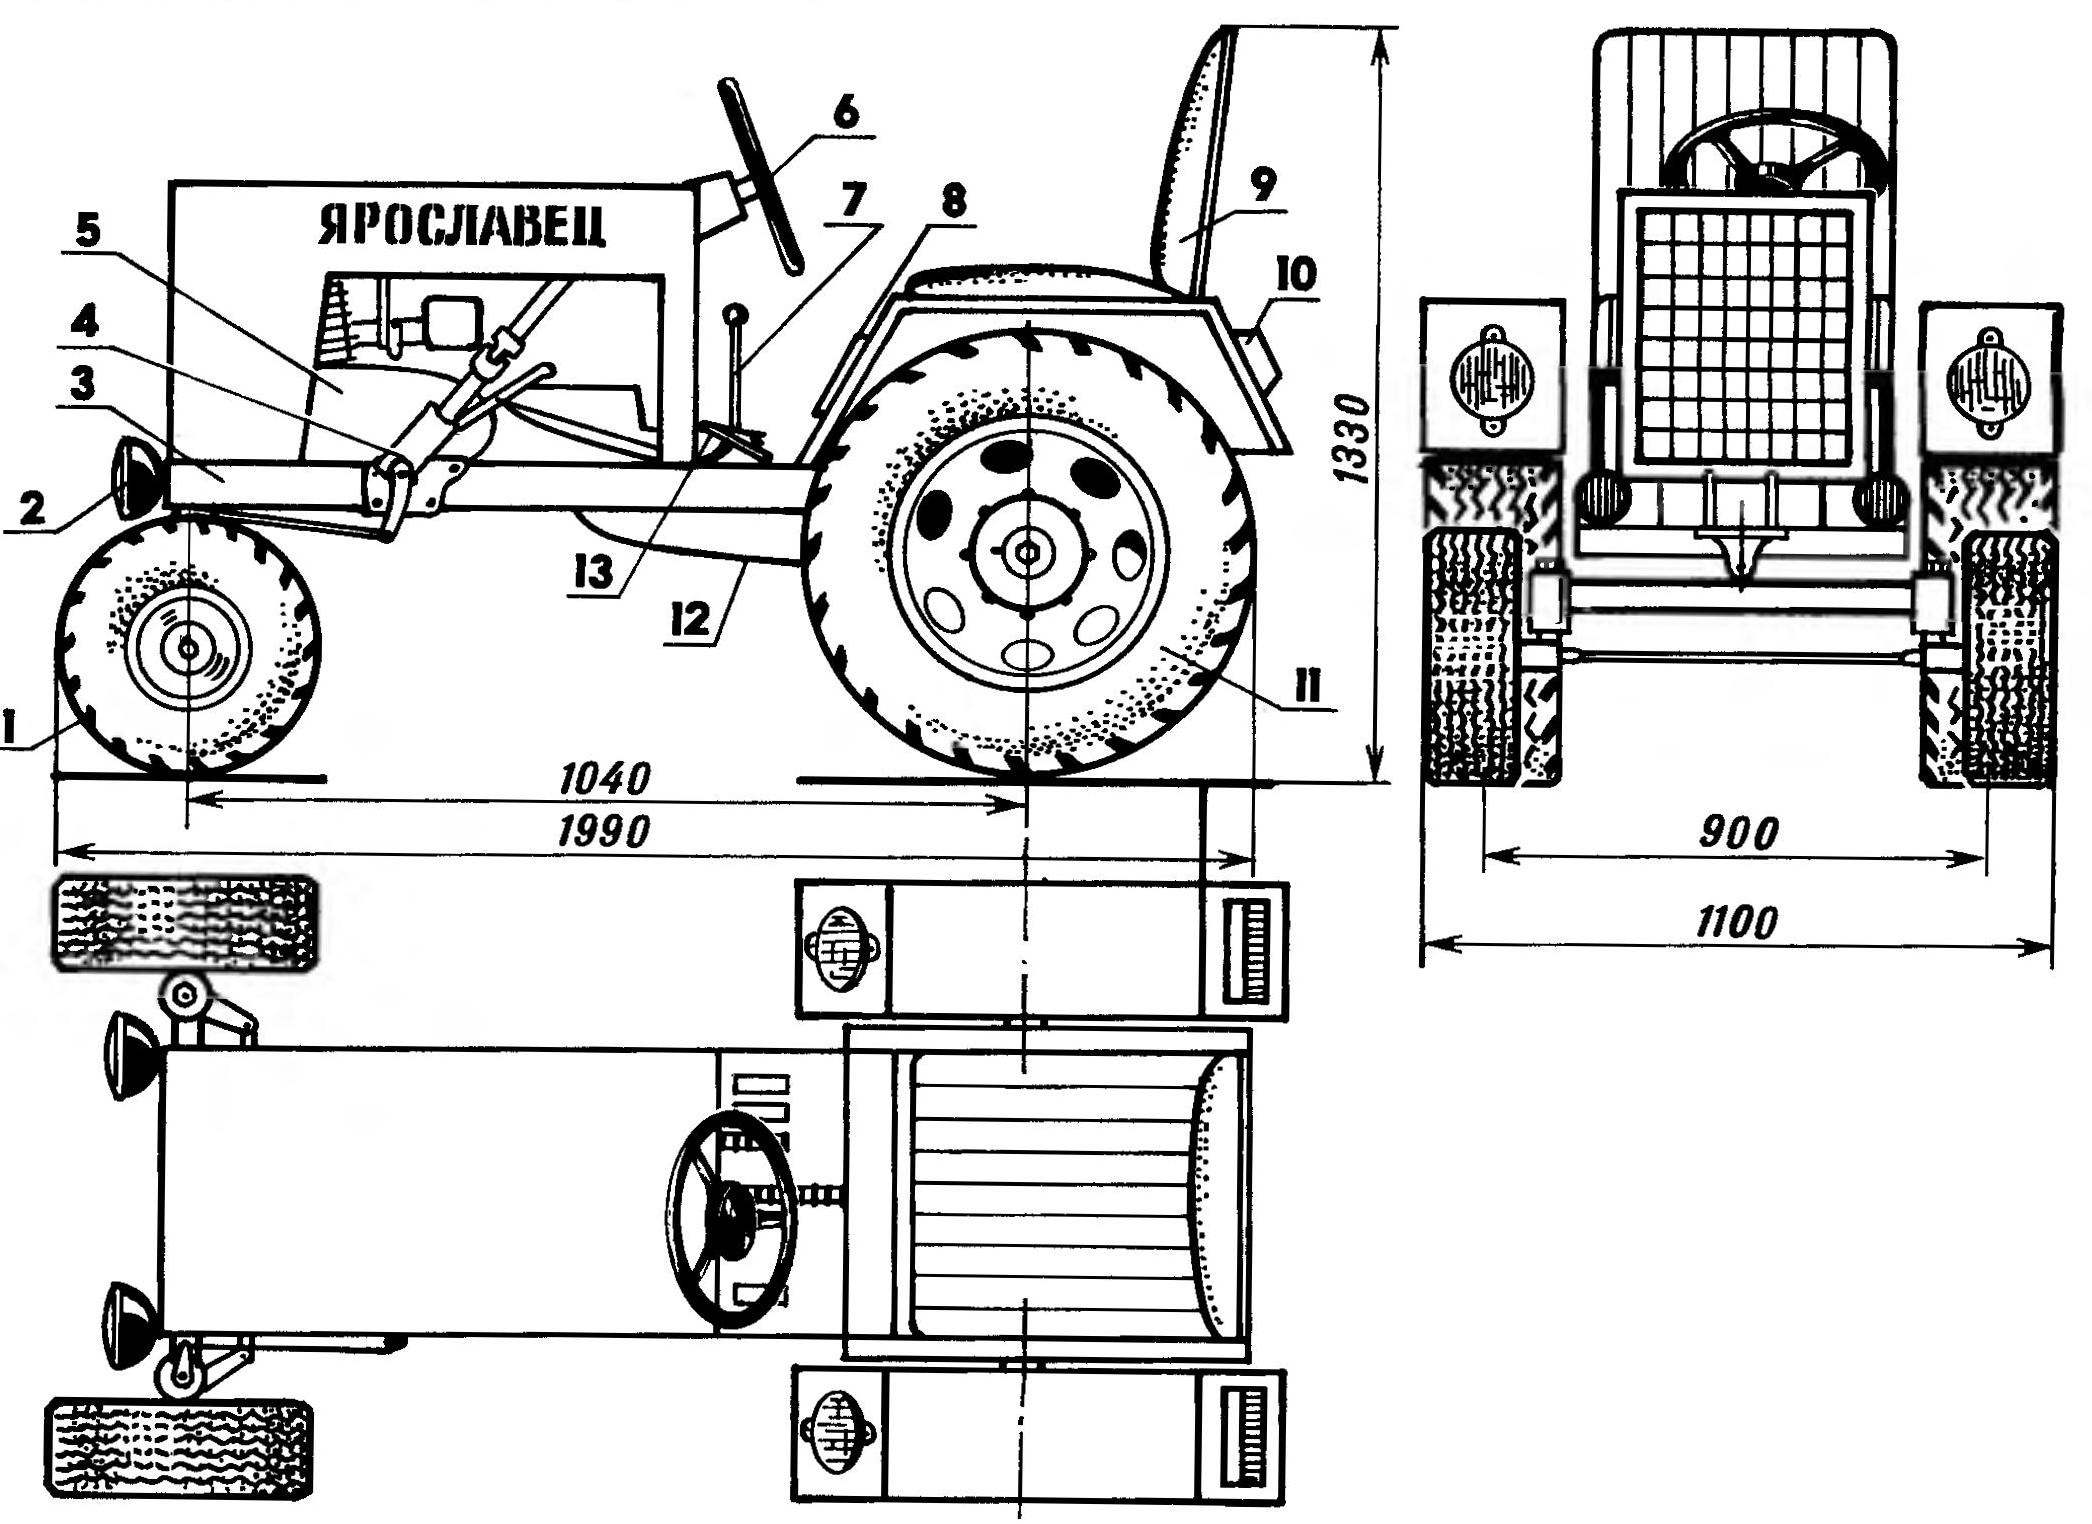 The layout of the mini-tractor